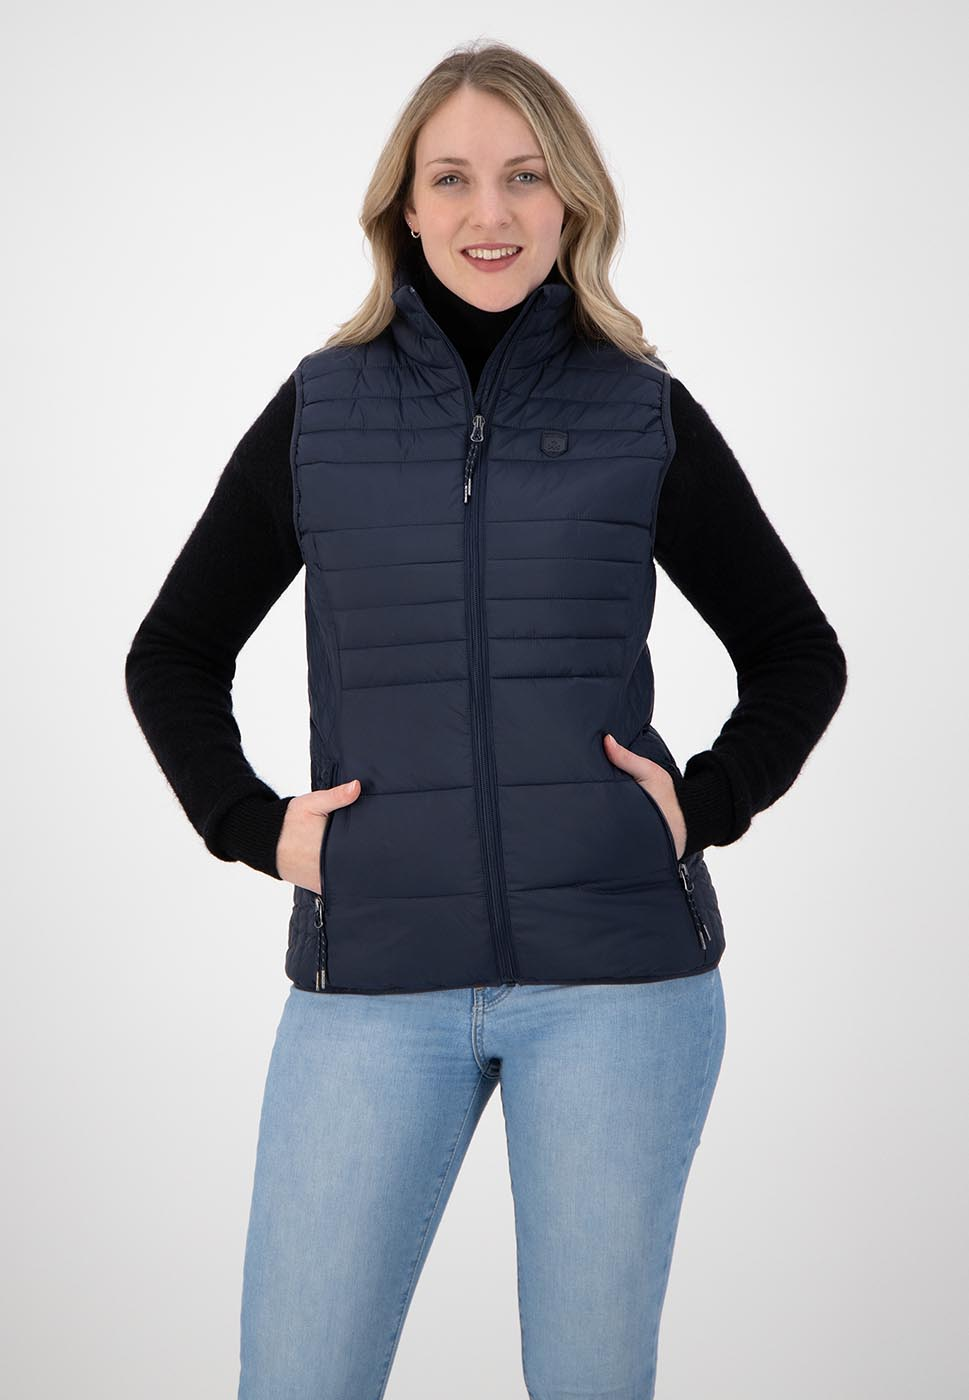 Kjelvik Scandinavian Clothing - Women Bodywarmers Denise Navy